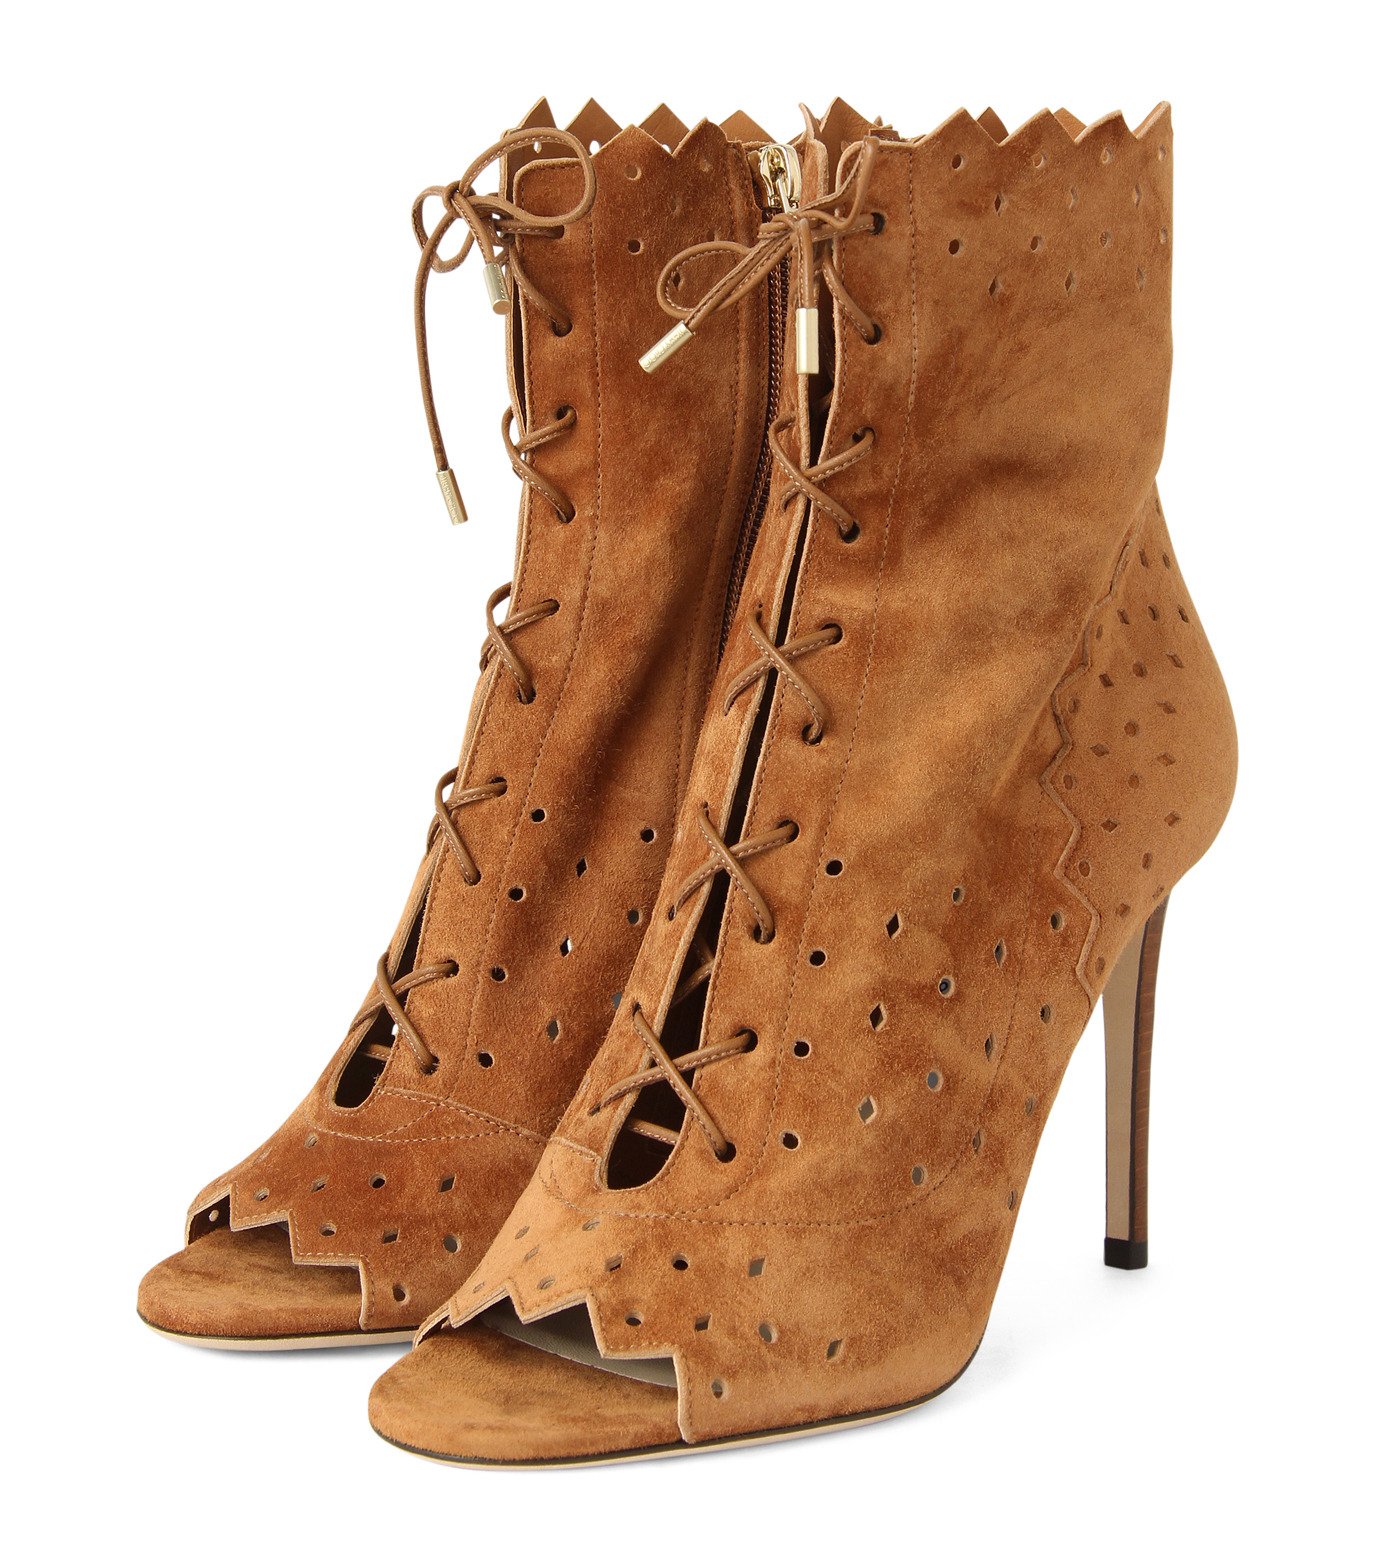 Jimmy Choo(ジミーチュウ)の161Cashmere Suede Laceup Boots-CAMEL(ブーツ/boots)-DEI-100-HSC-53 拡大詳細画像3